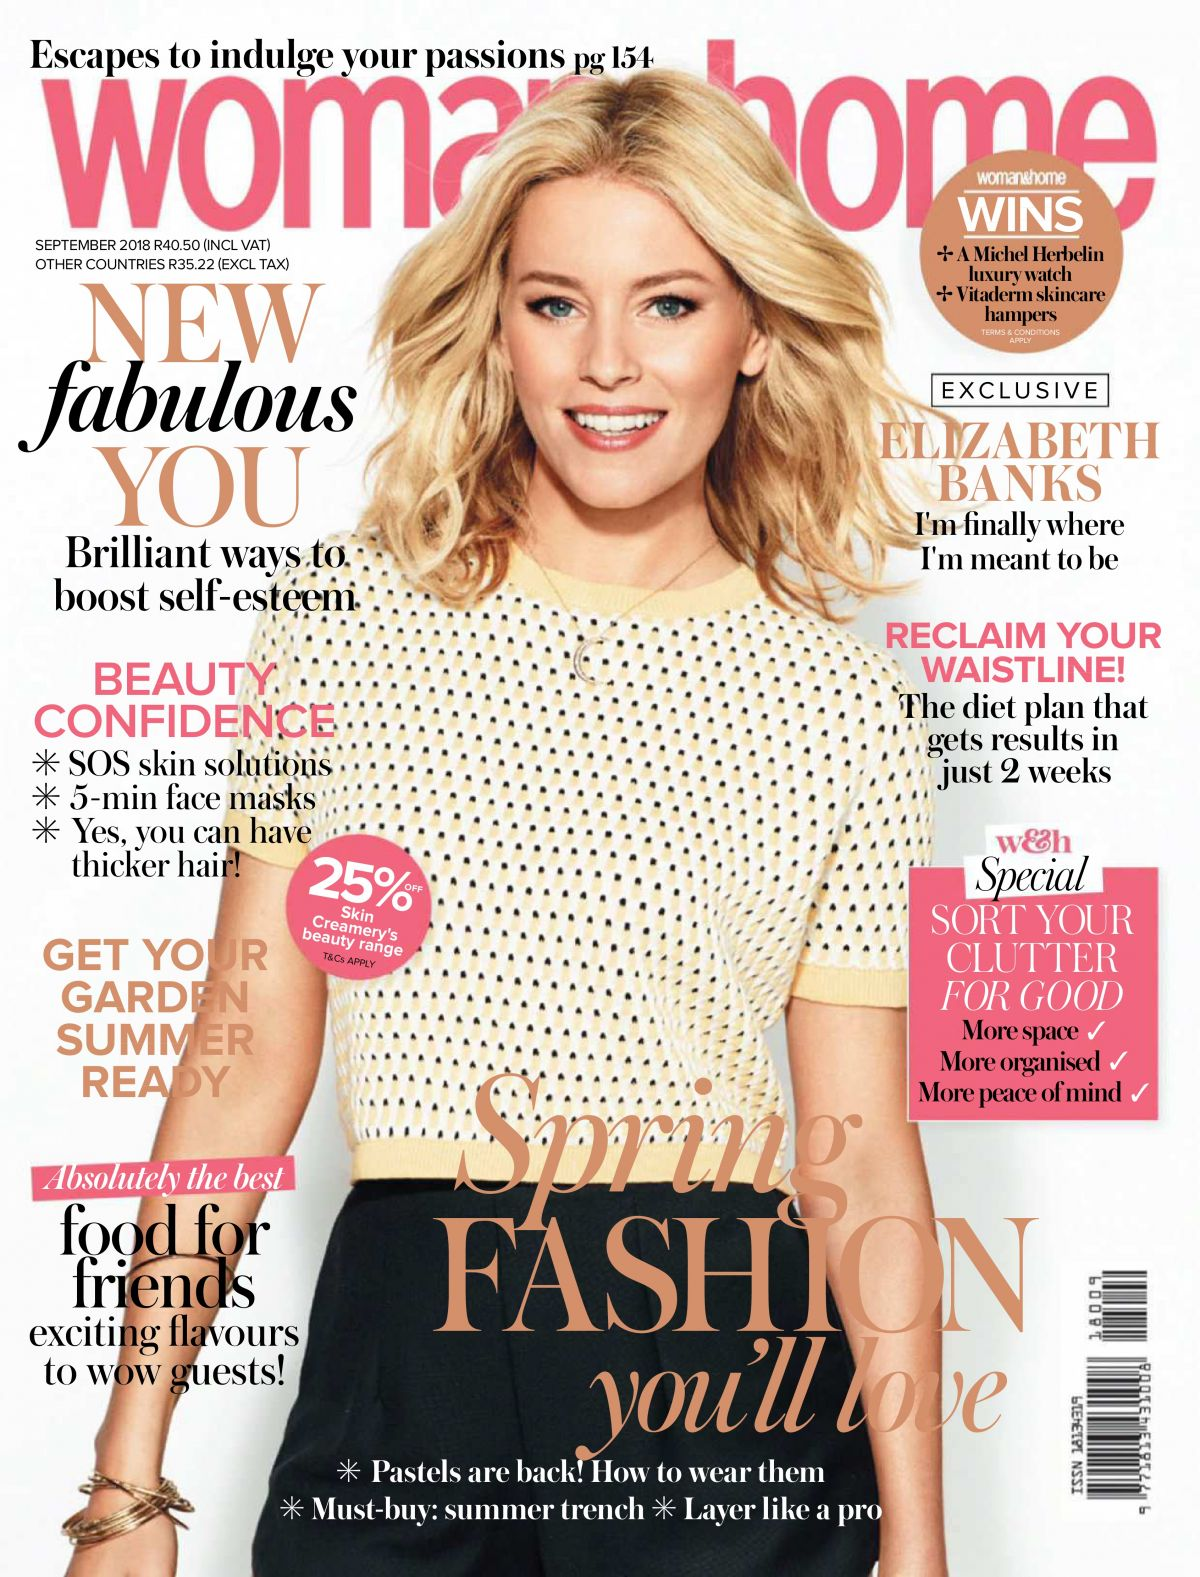 Elizabeth Banks In Woman Home Magazine South Africa September